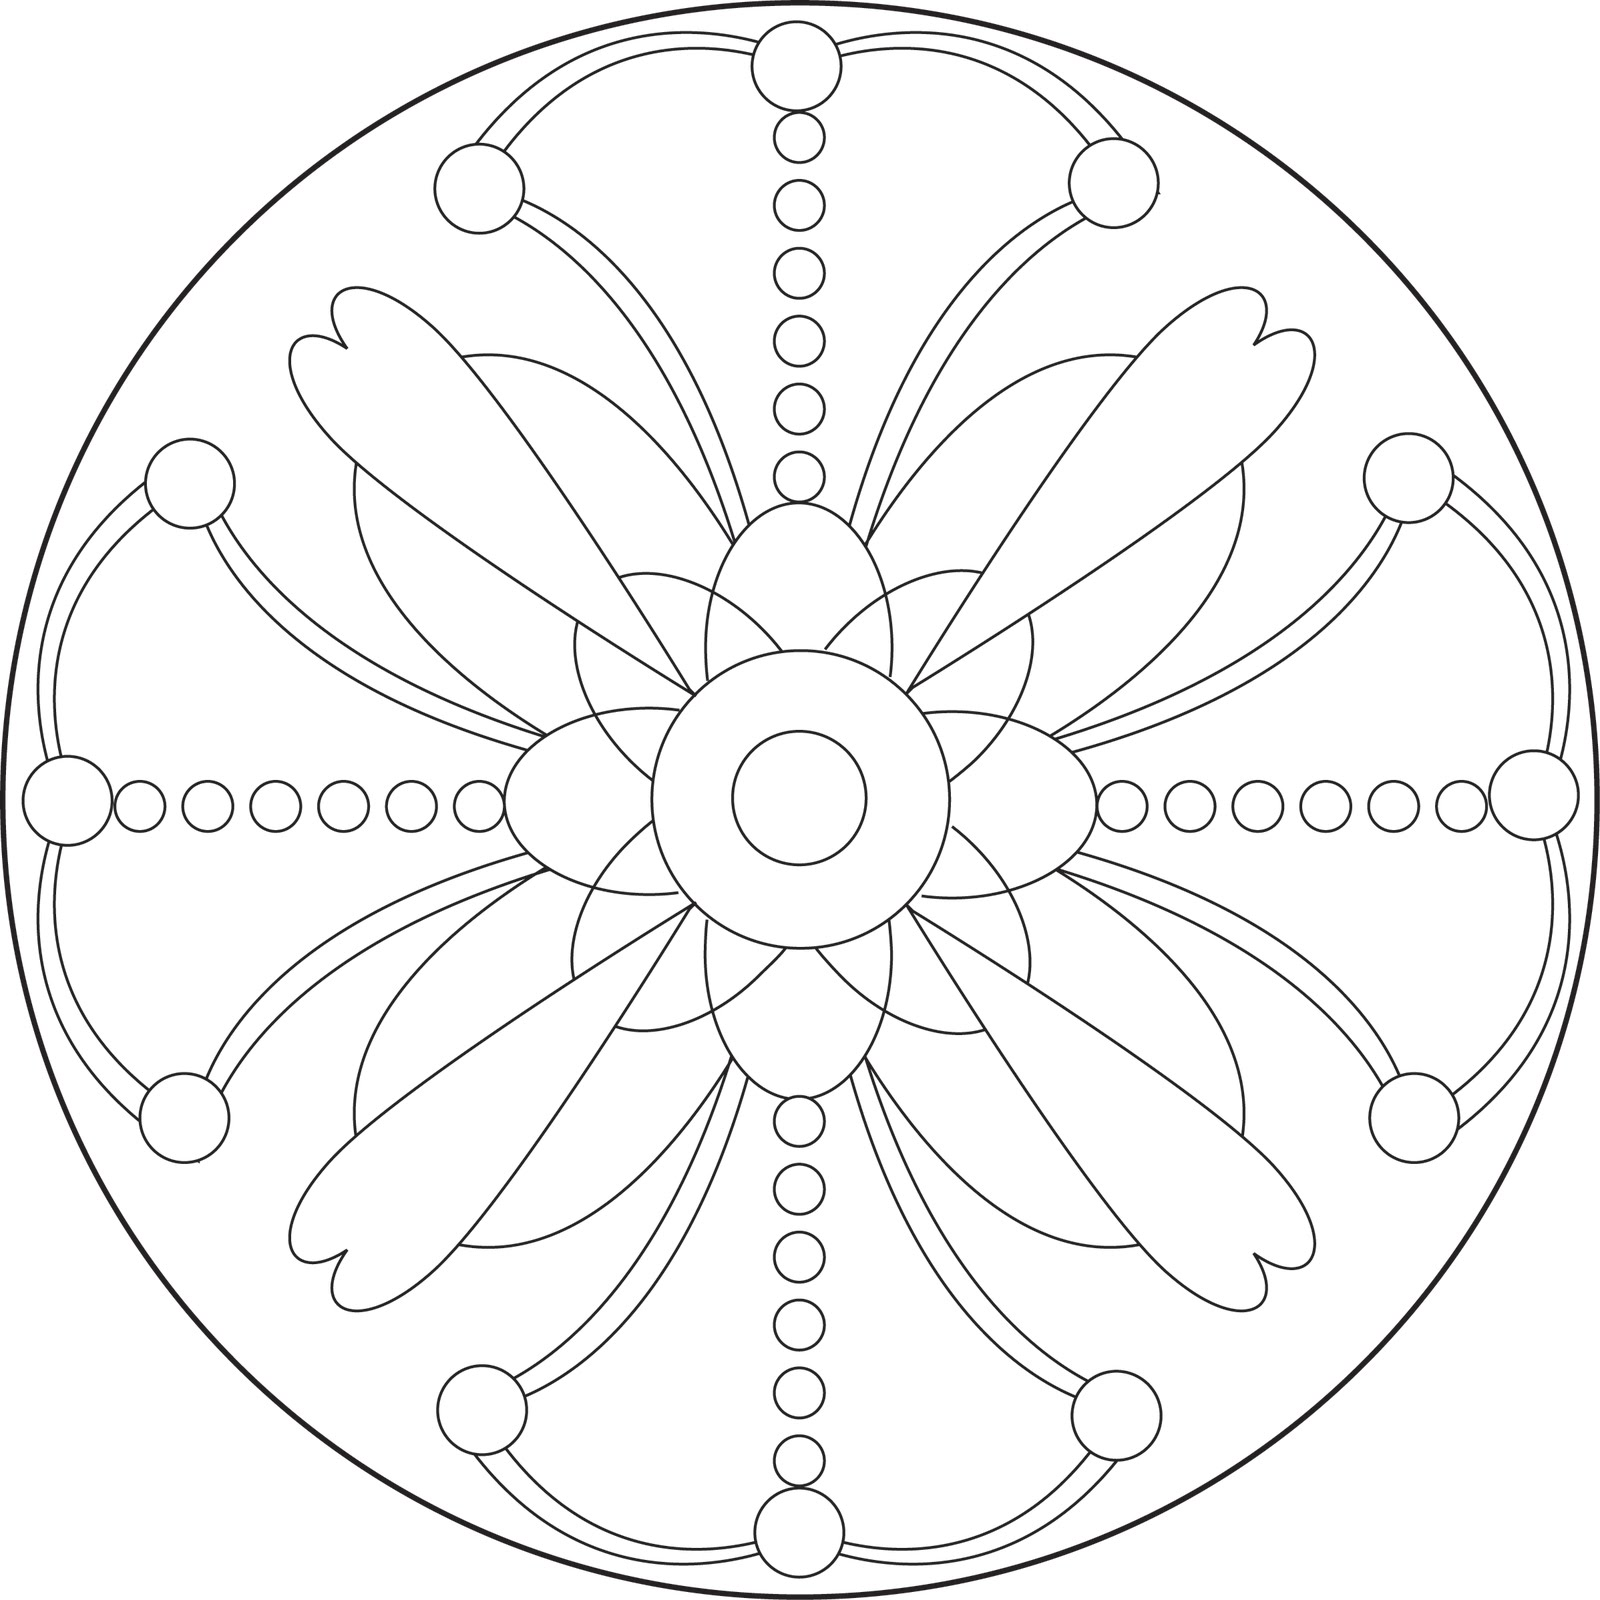 Hd Easy Mandala Designs To Draw Coloring Pages Images